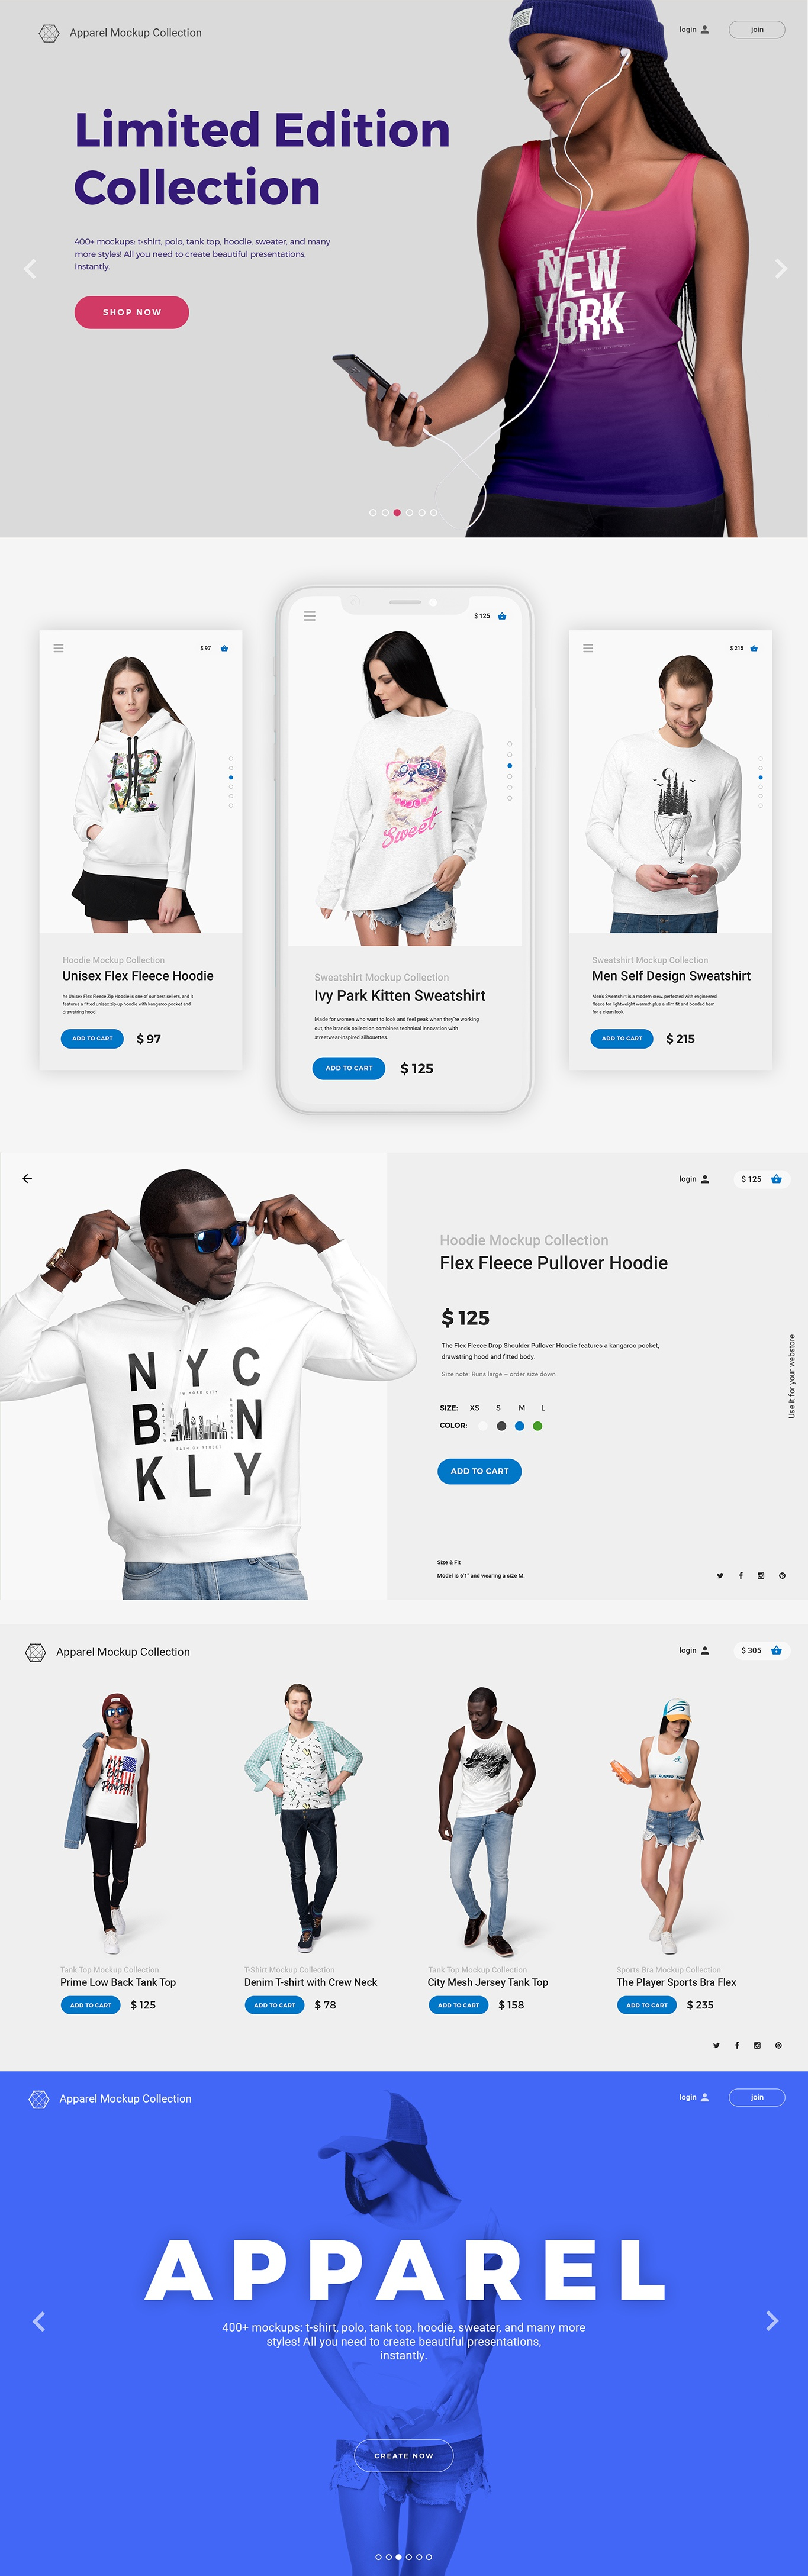 04 ultimate apparel mockup collection